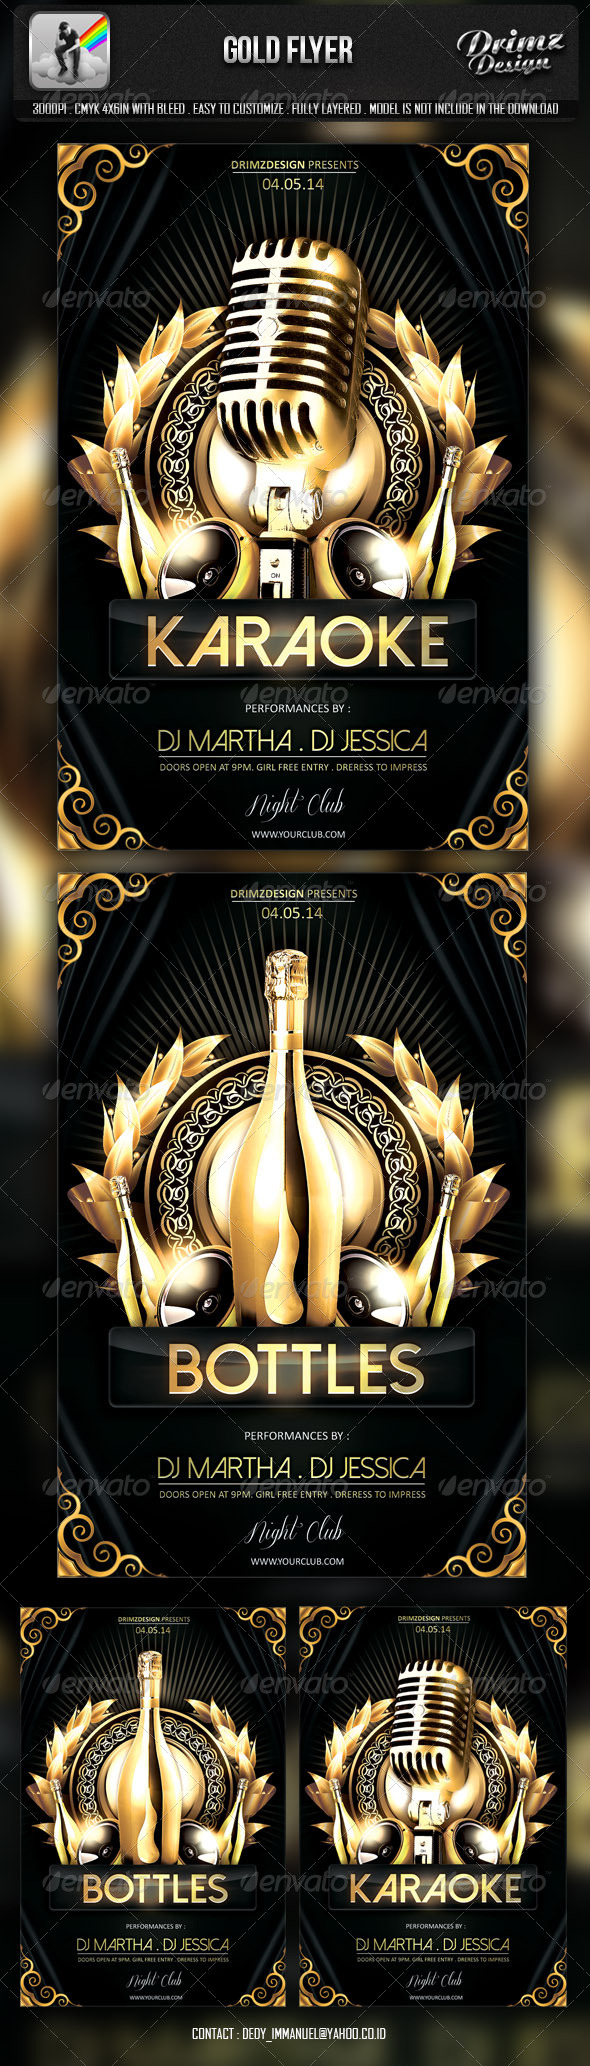 GraphicRiver Gold Flyer 6793778